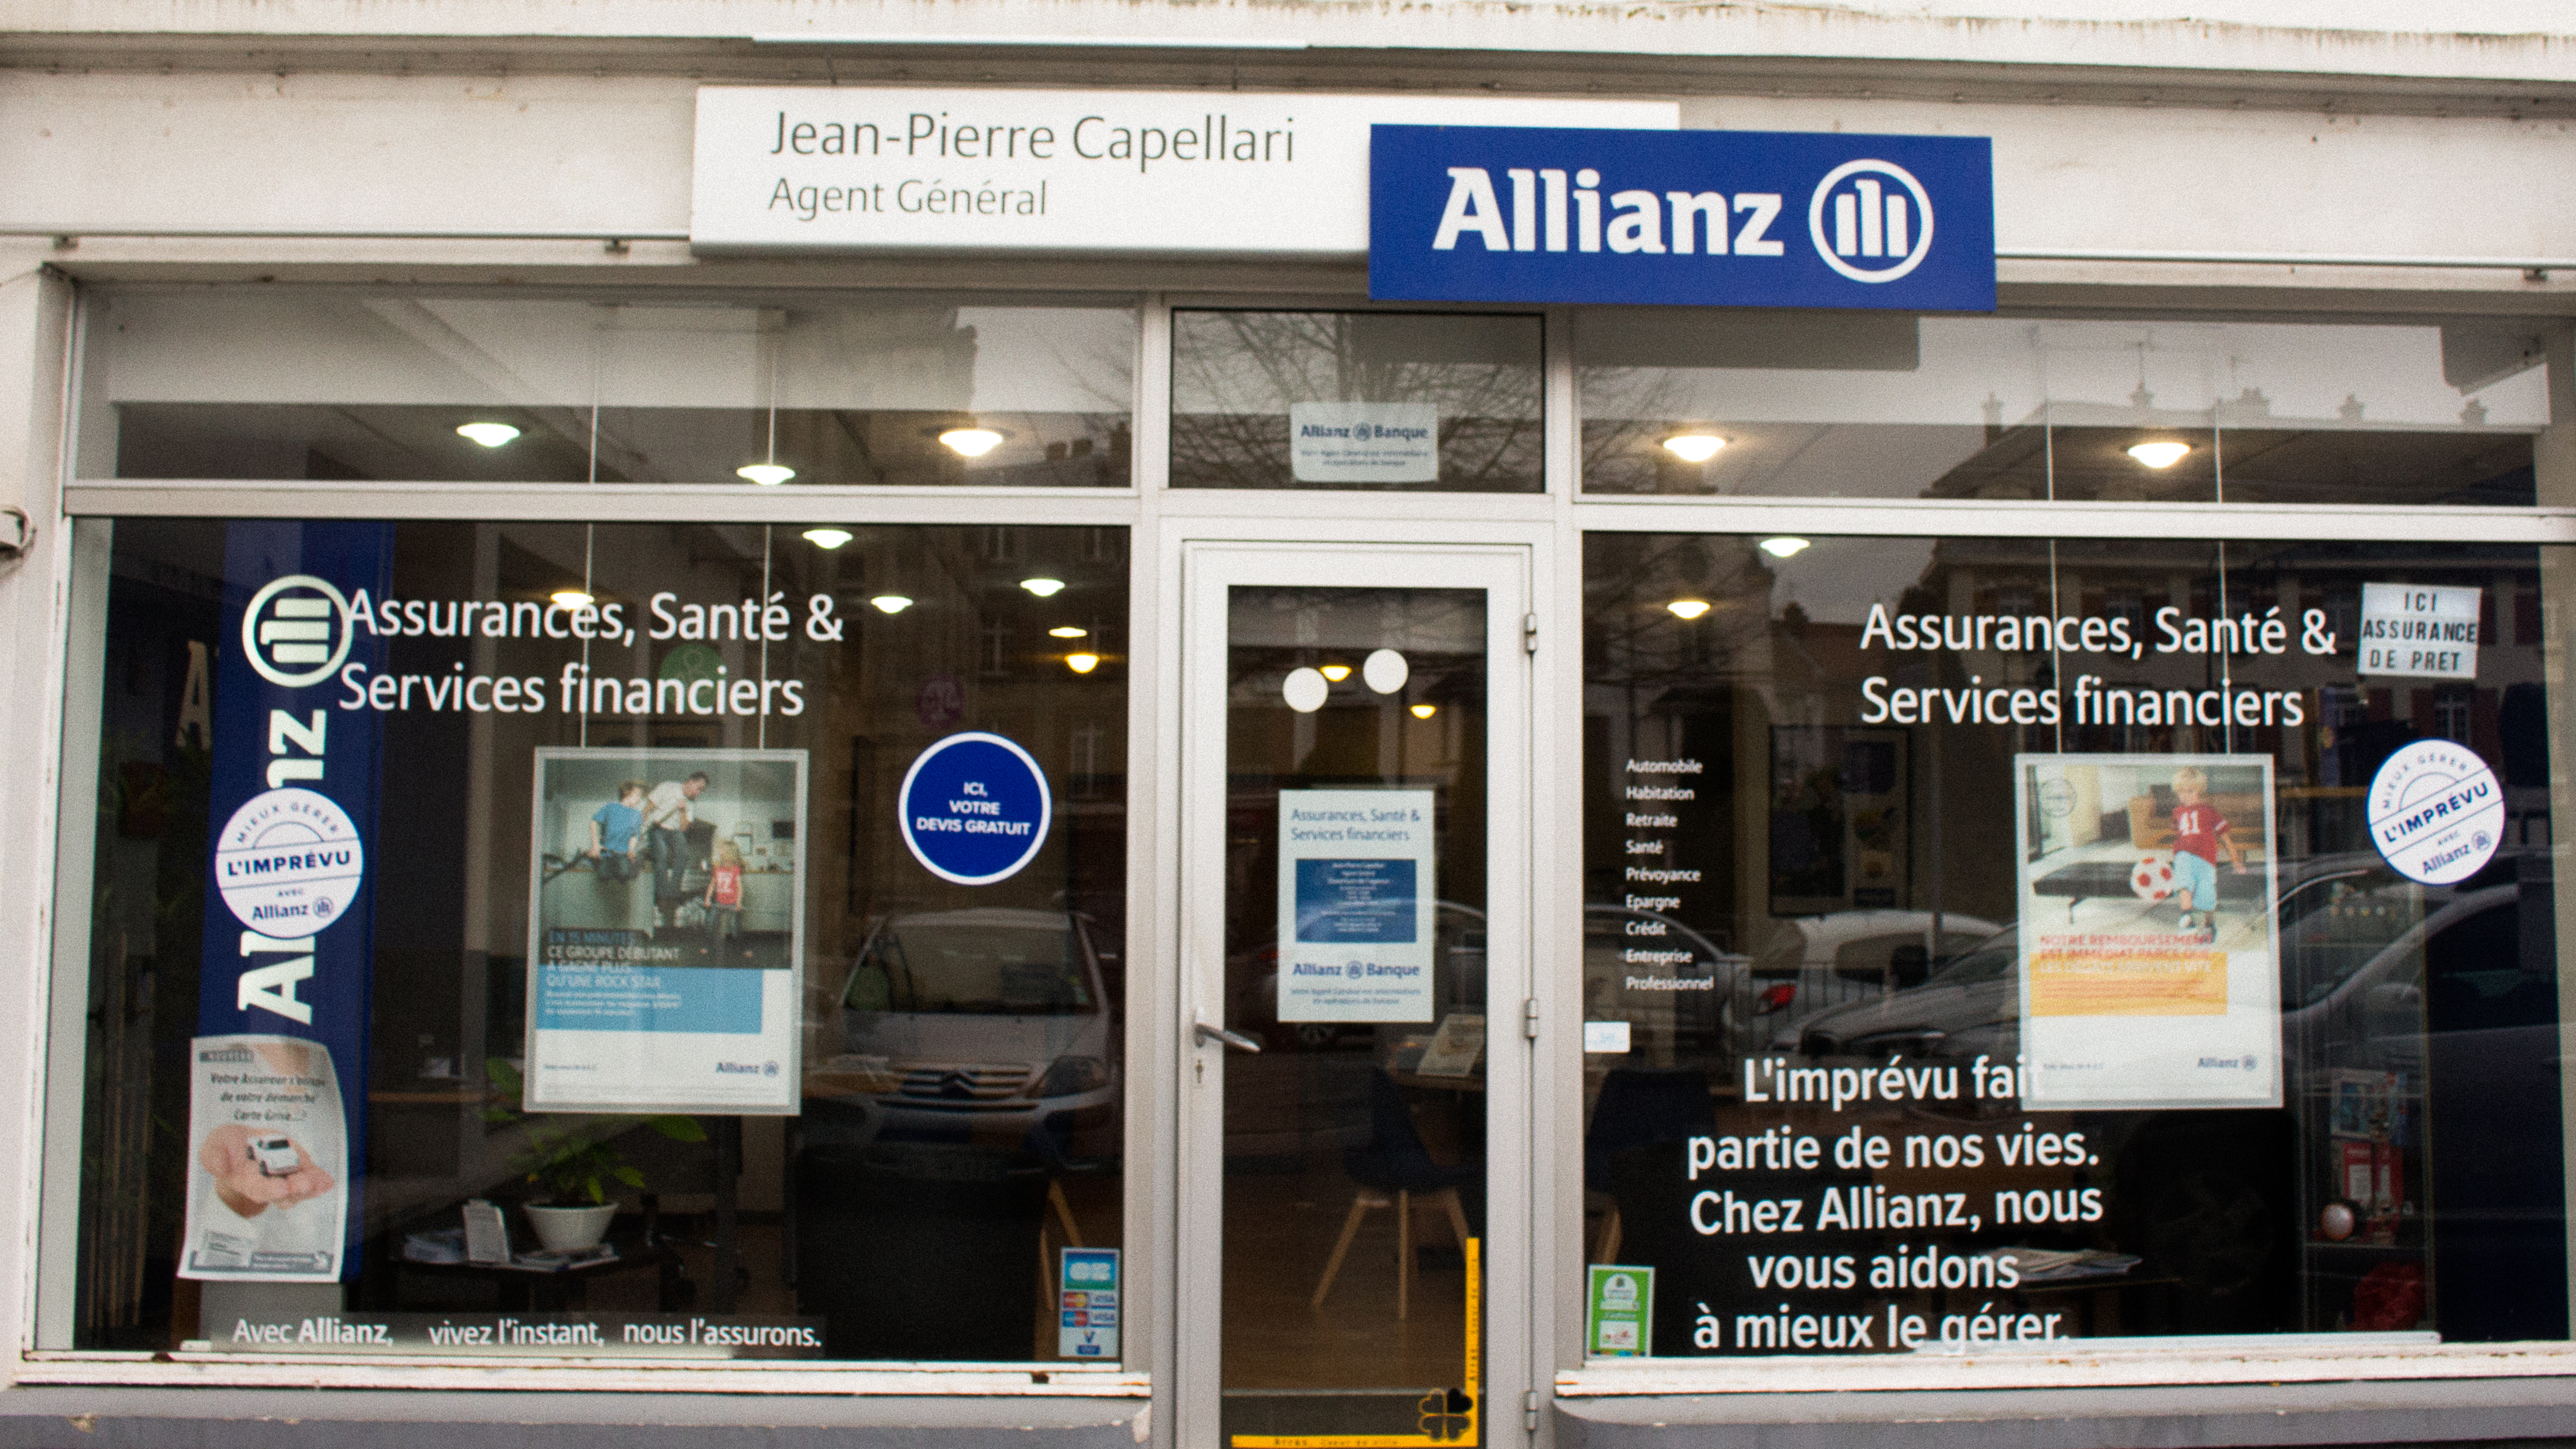 Allianz ARRAS CITADELLE - Jean-pierre CAPELLARI